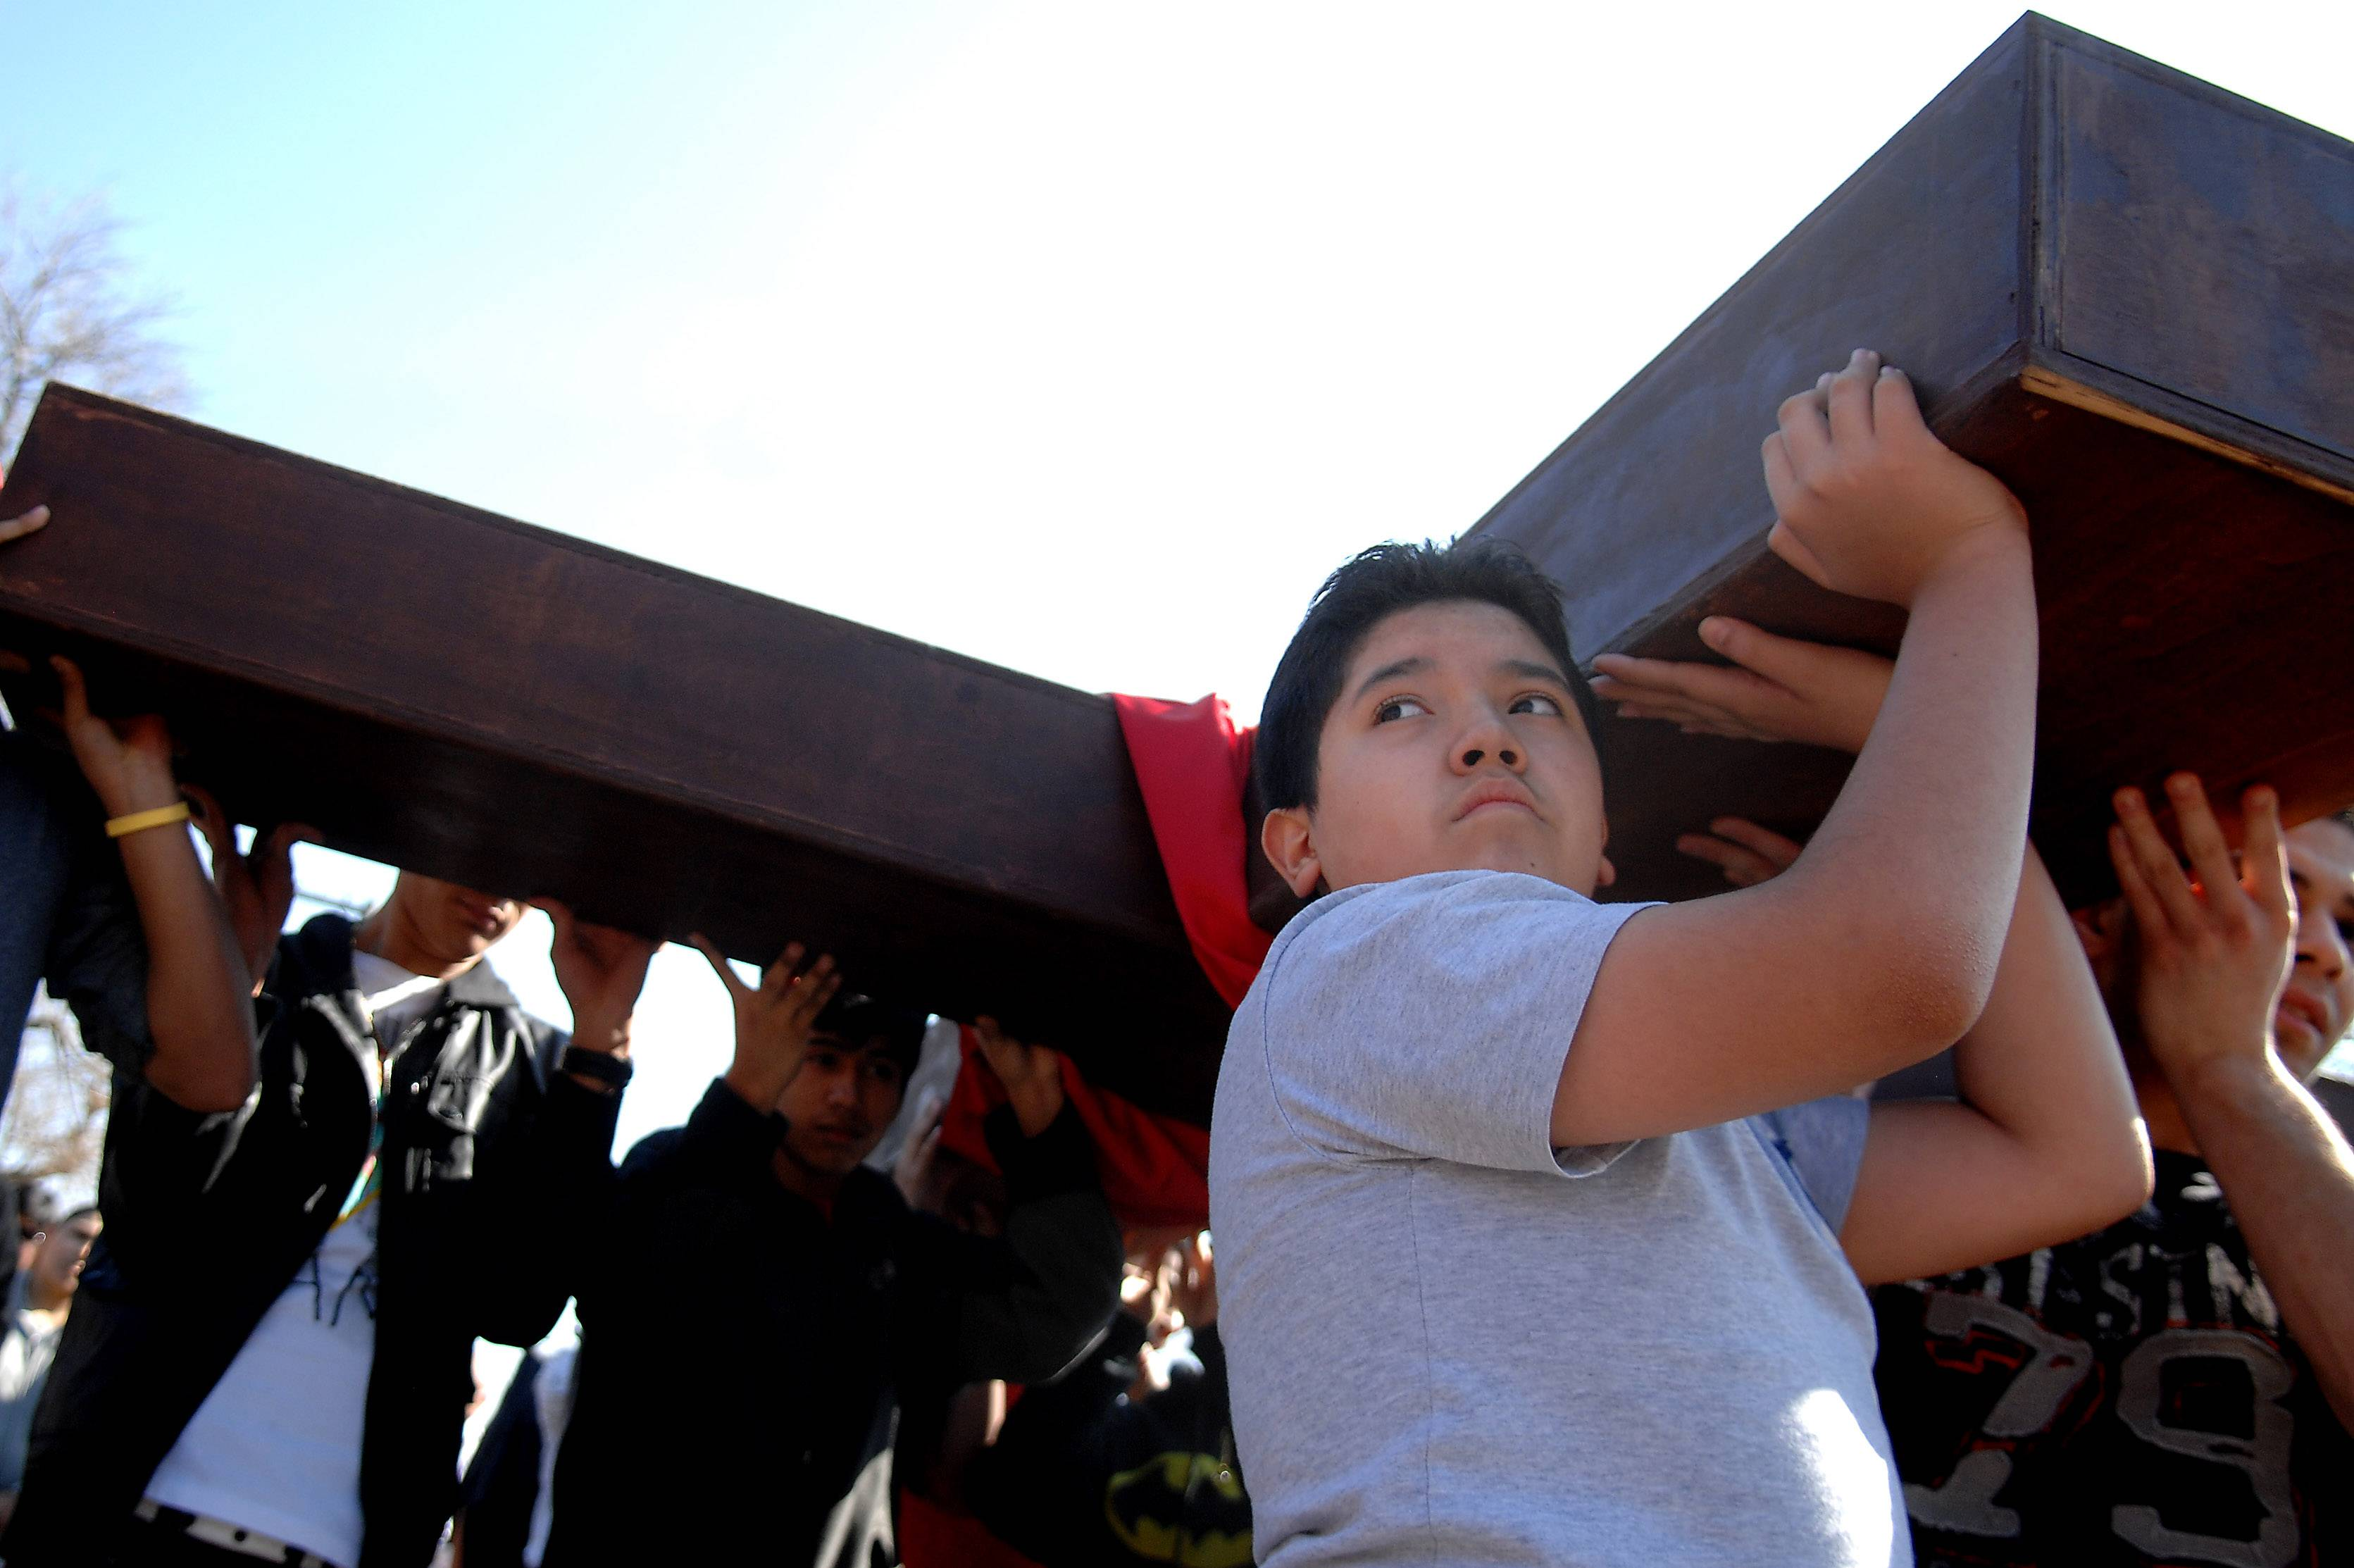 Eliseo Coron, 12, of Elgin, gets a turn carrying the cross during St. Joseph Catholic Church's annual Good Friday Stations of the Cross procession in Elgin.